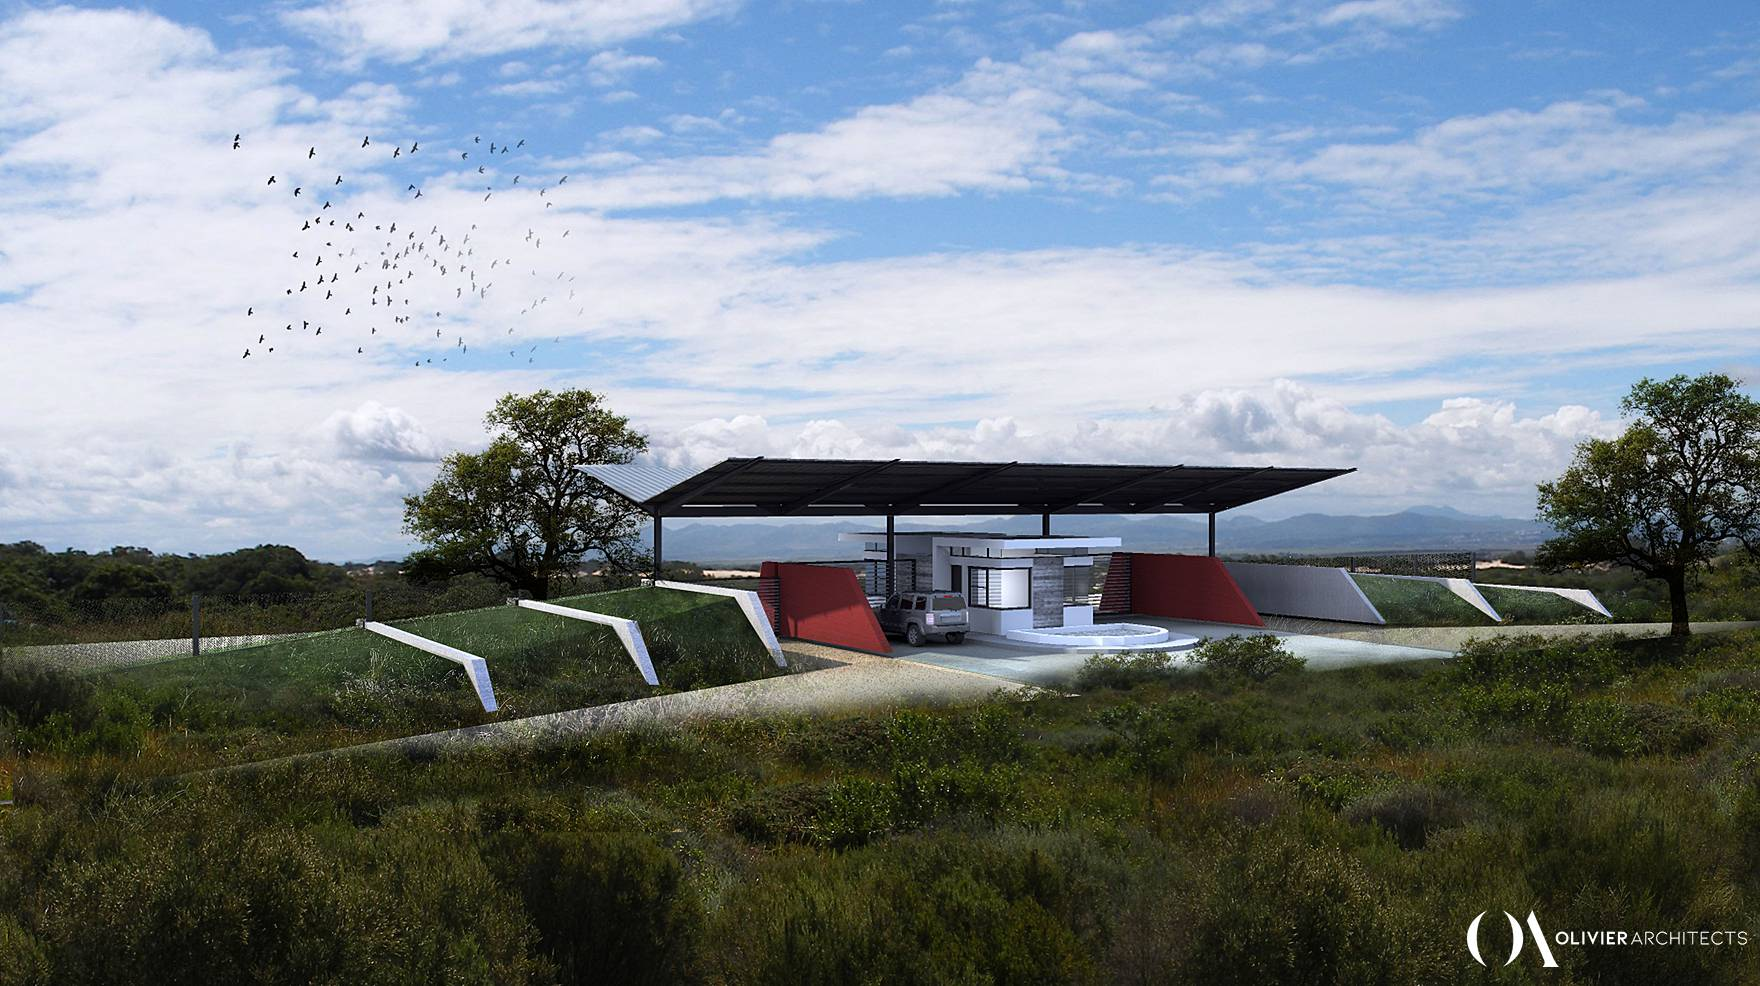 Rural Community Development and Farming Community - Agriculture - Olivier Architects